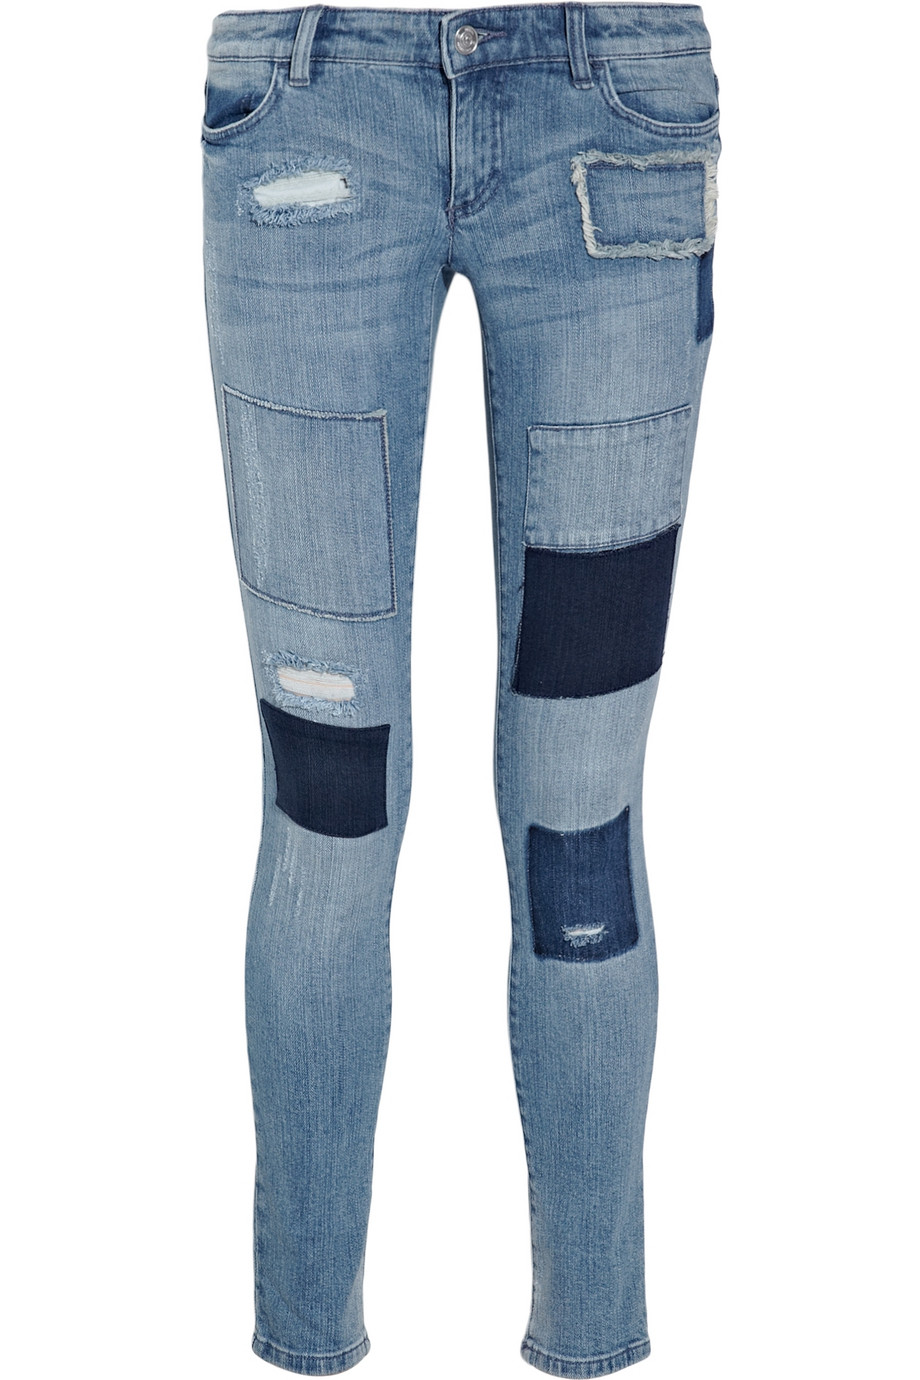 michael michael kors patchwork low rise leggings style jeans in blue lyst. Black Bedroom Furniture Sets. Home Design Ideas